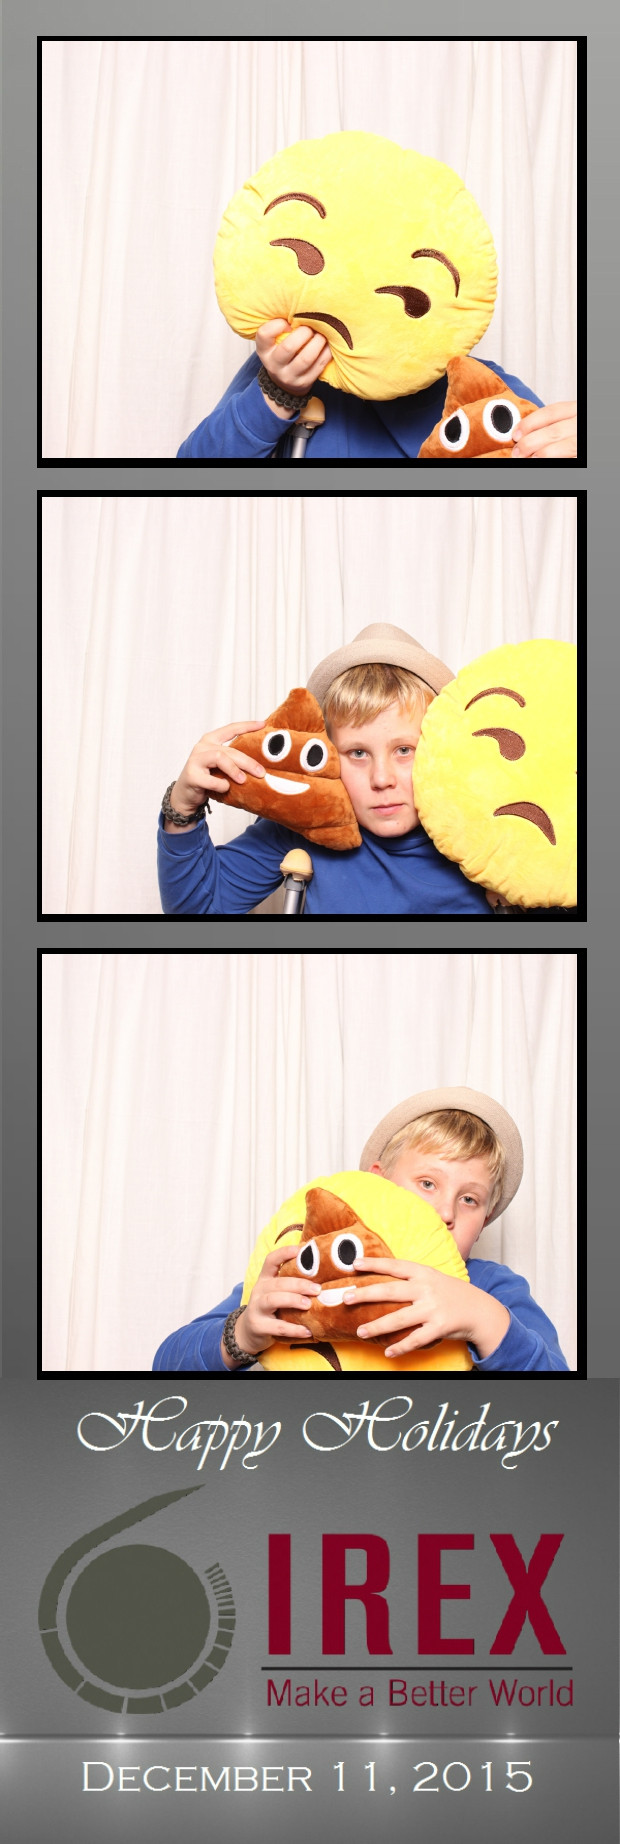 Guest House Events Photo Booth Strips IREX (24).jpg